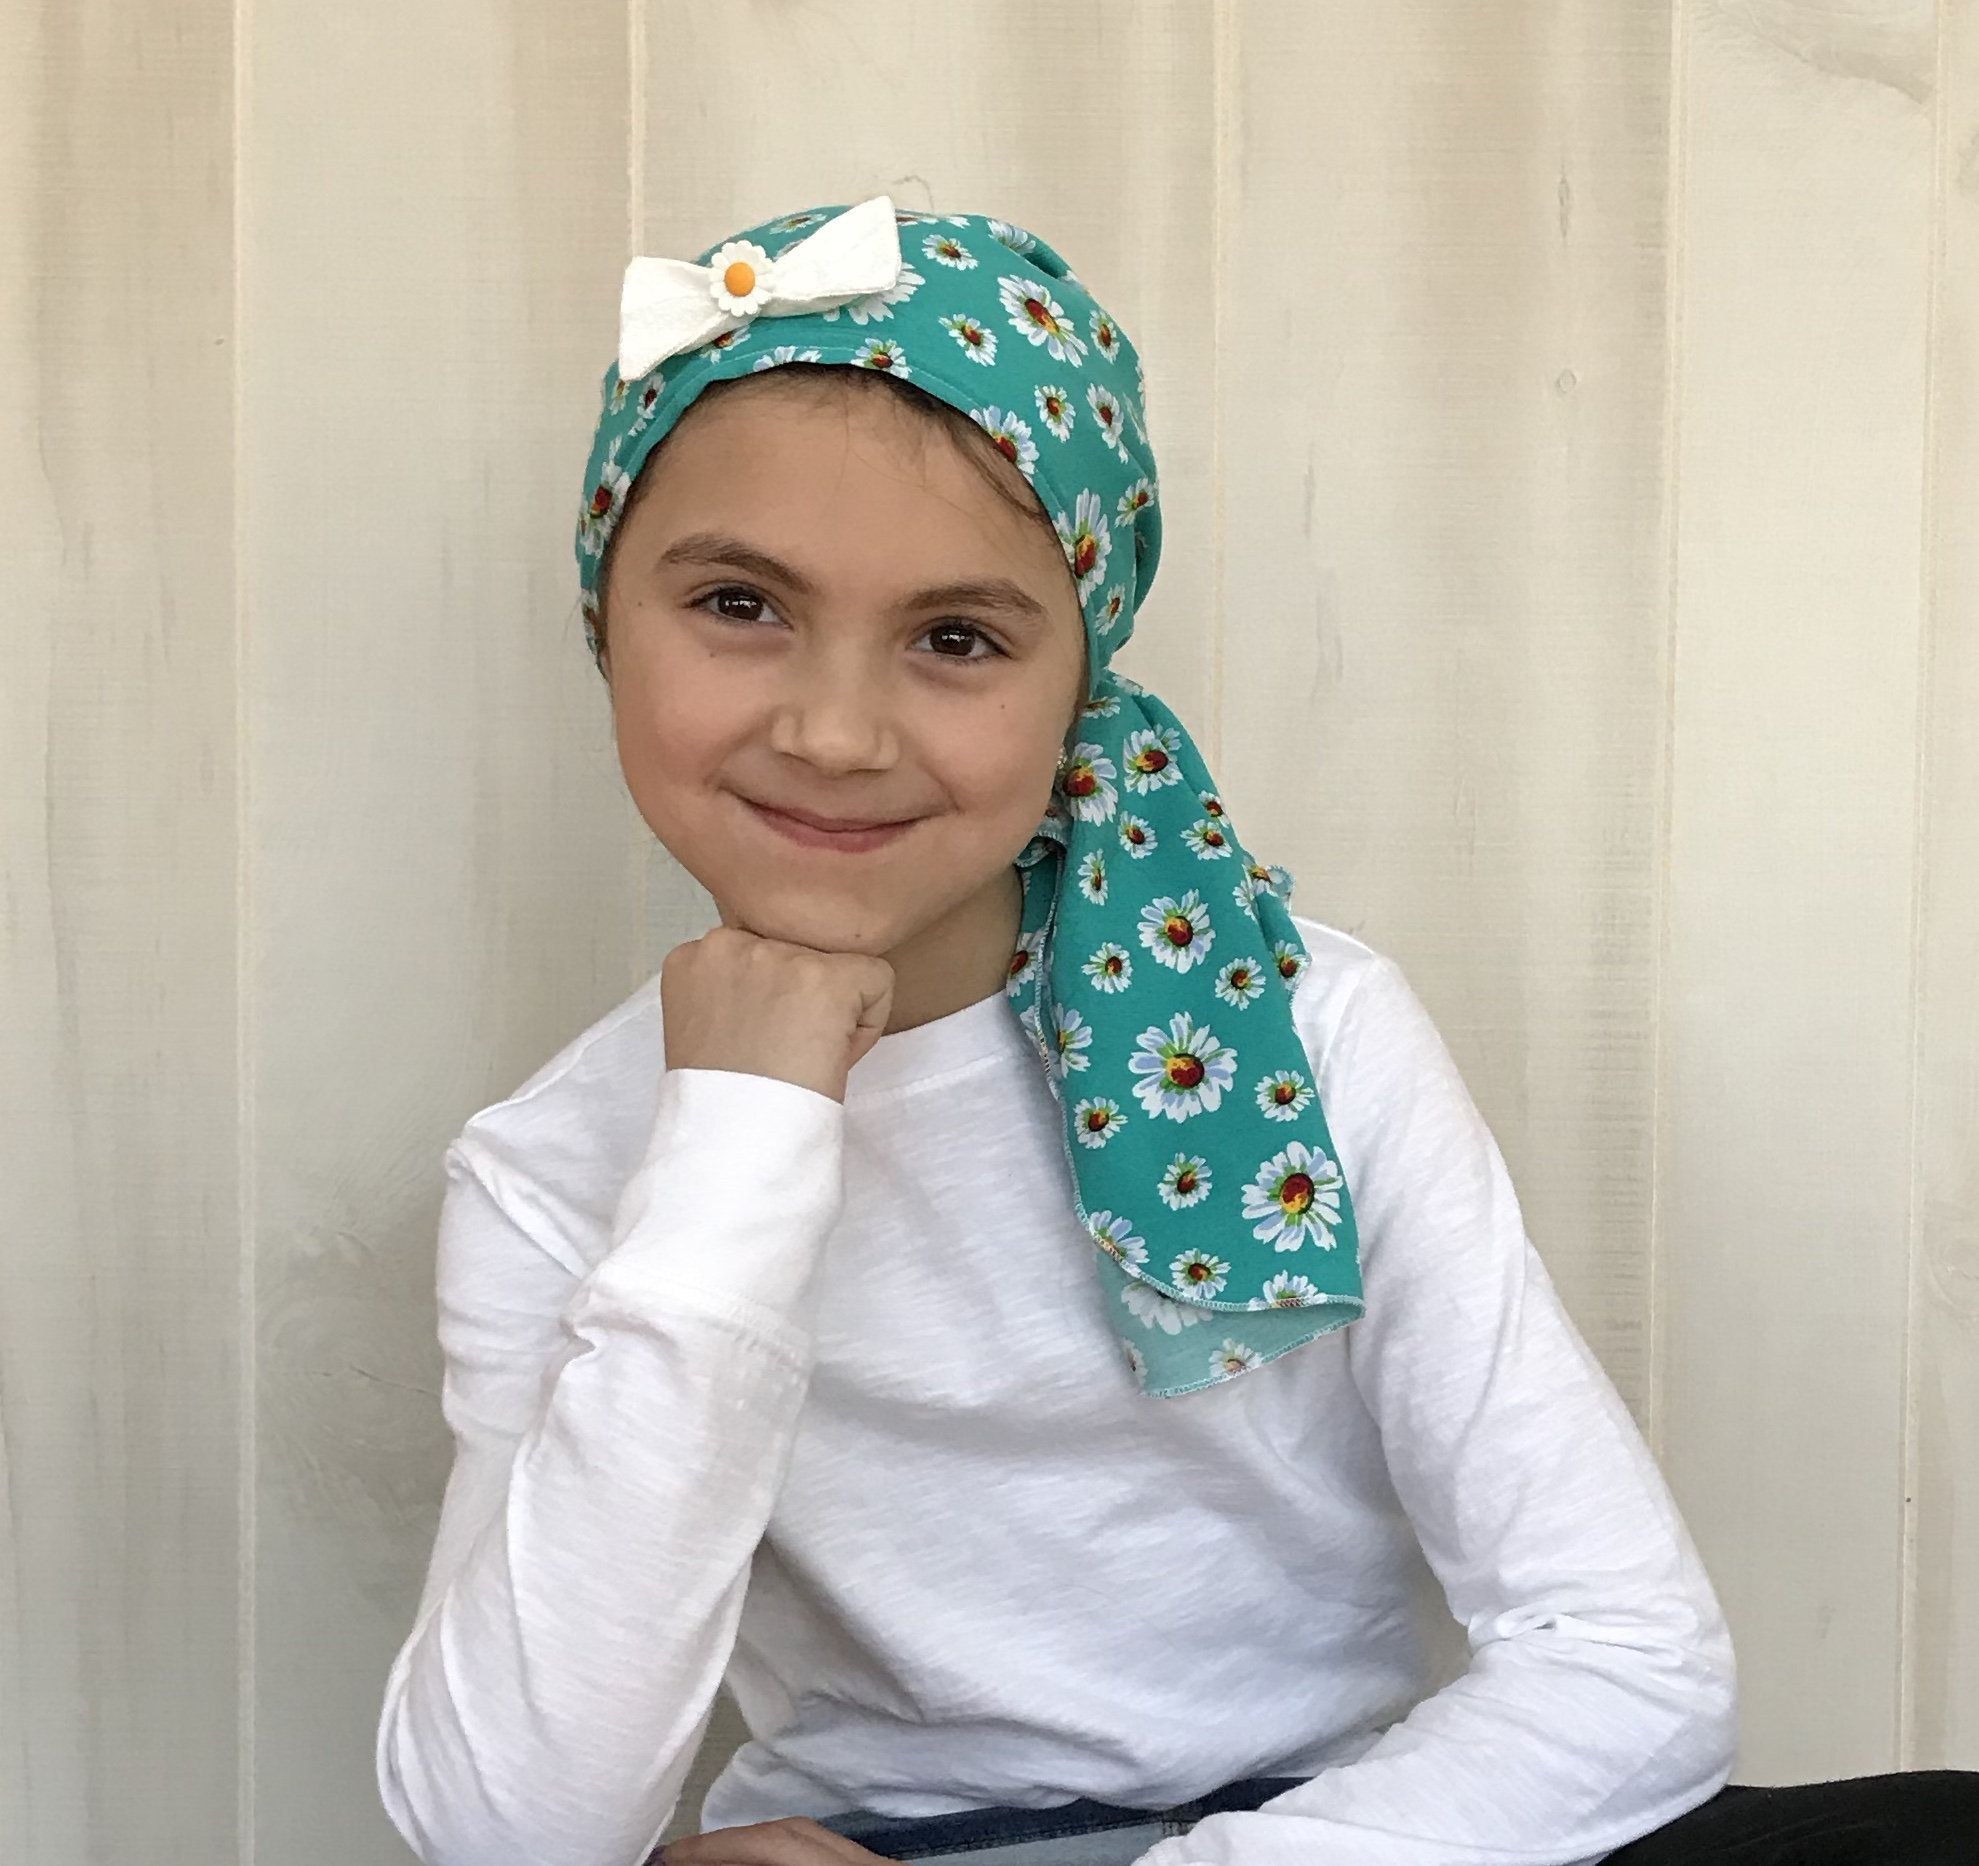 Child's Pre-Tied Head Scarf for children with #hairloss., Girl's #Chemo #Hat, #Cancer #HeadCover, #Alopecia #Headwear, #HeadWrap, #CancerGift, #Green #Daisies #flowers #pretied #headscarf #avascarf #lovemyIHC #childhoodcancer #tieheadscarves